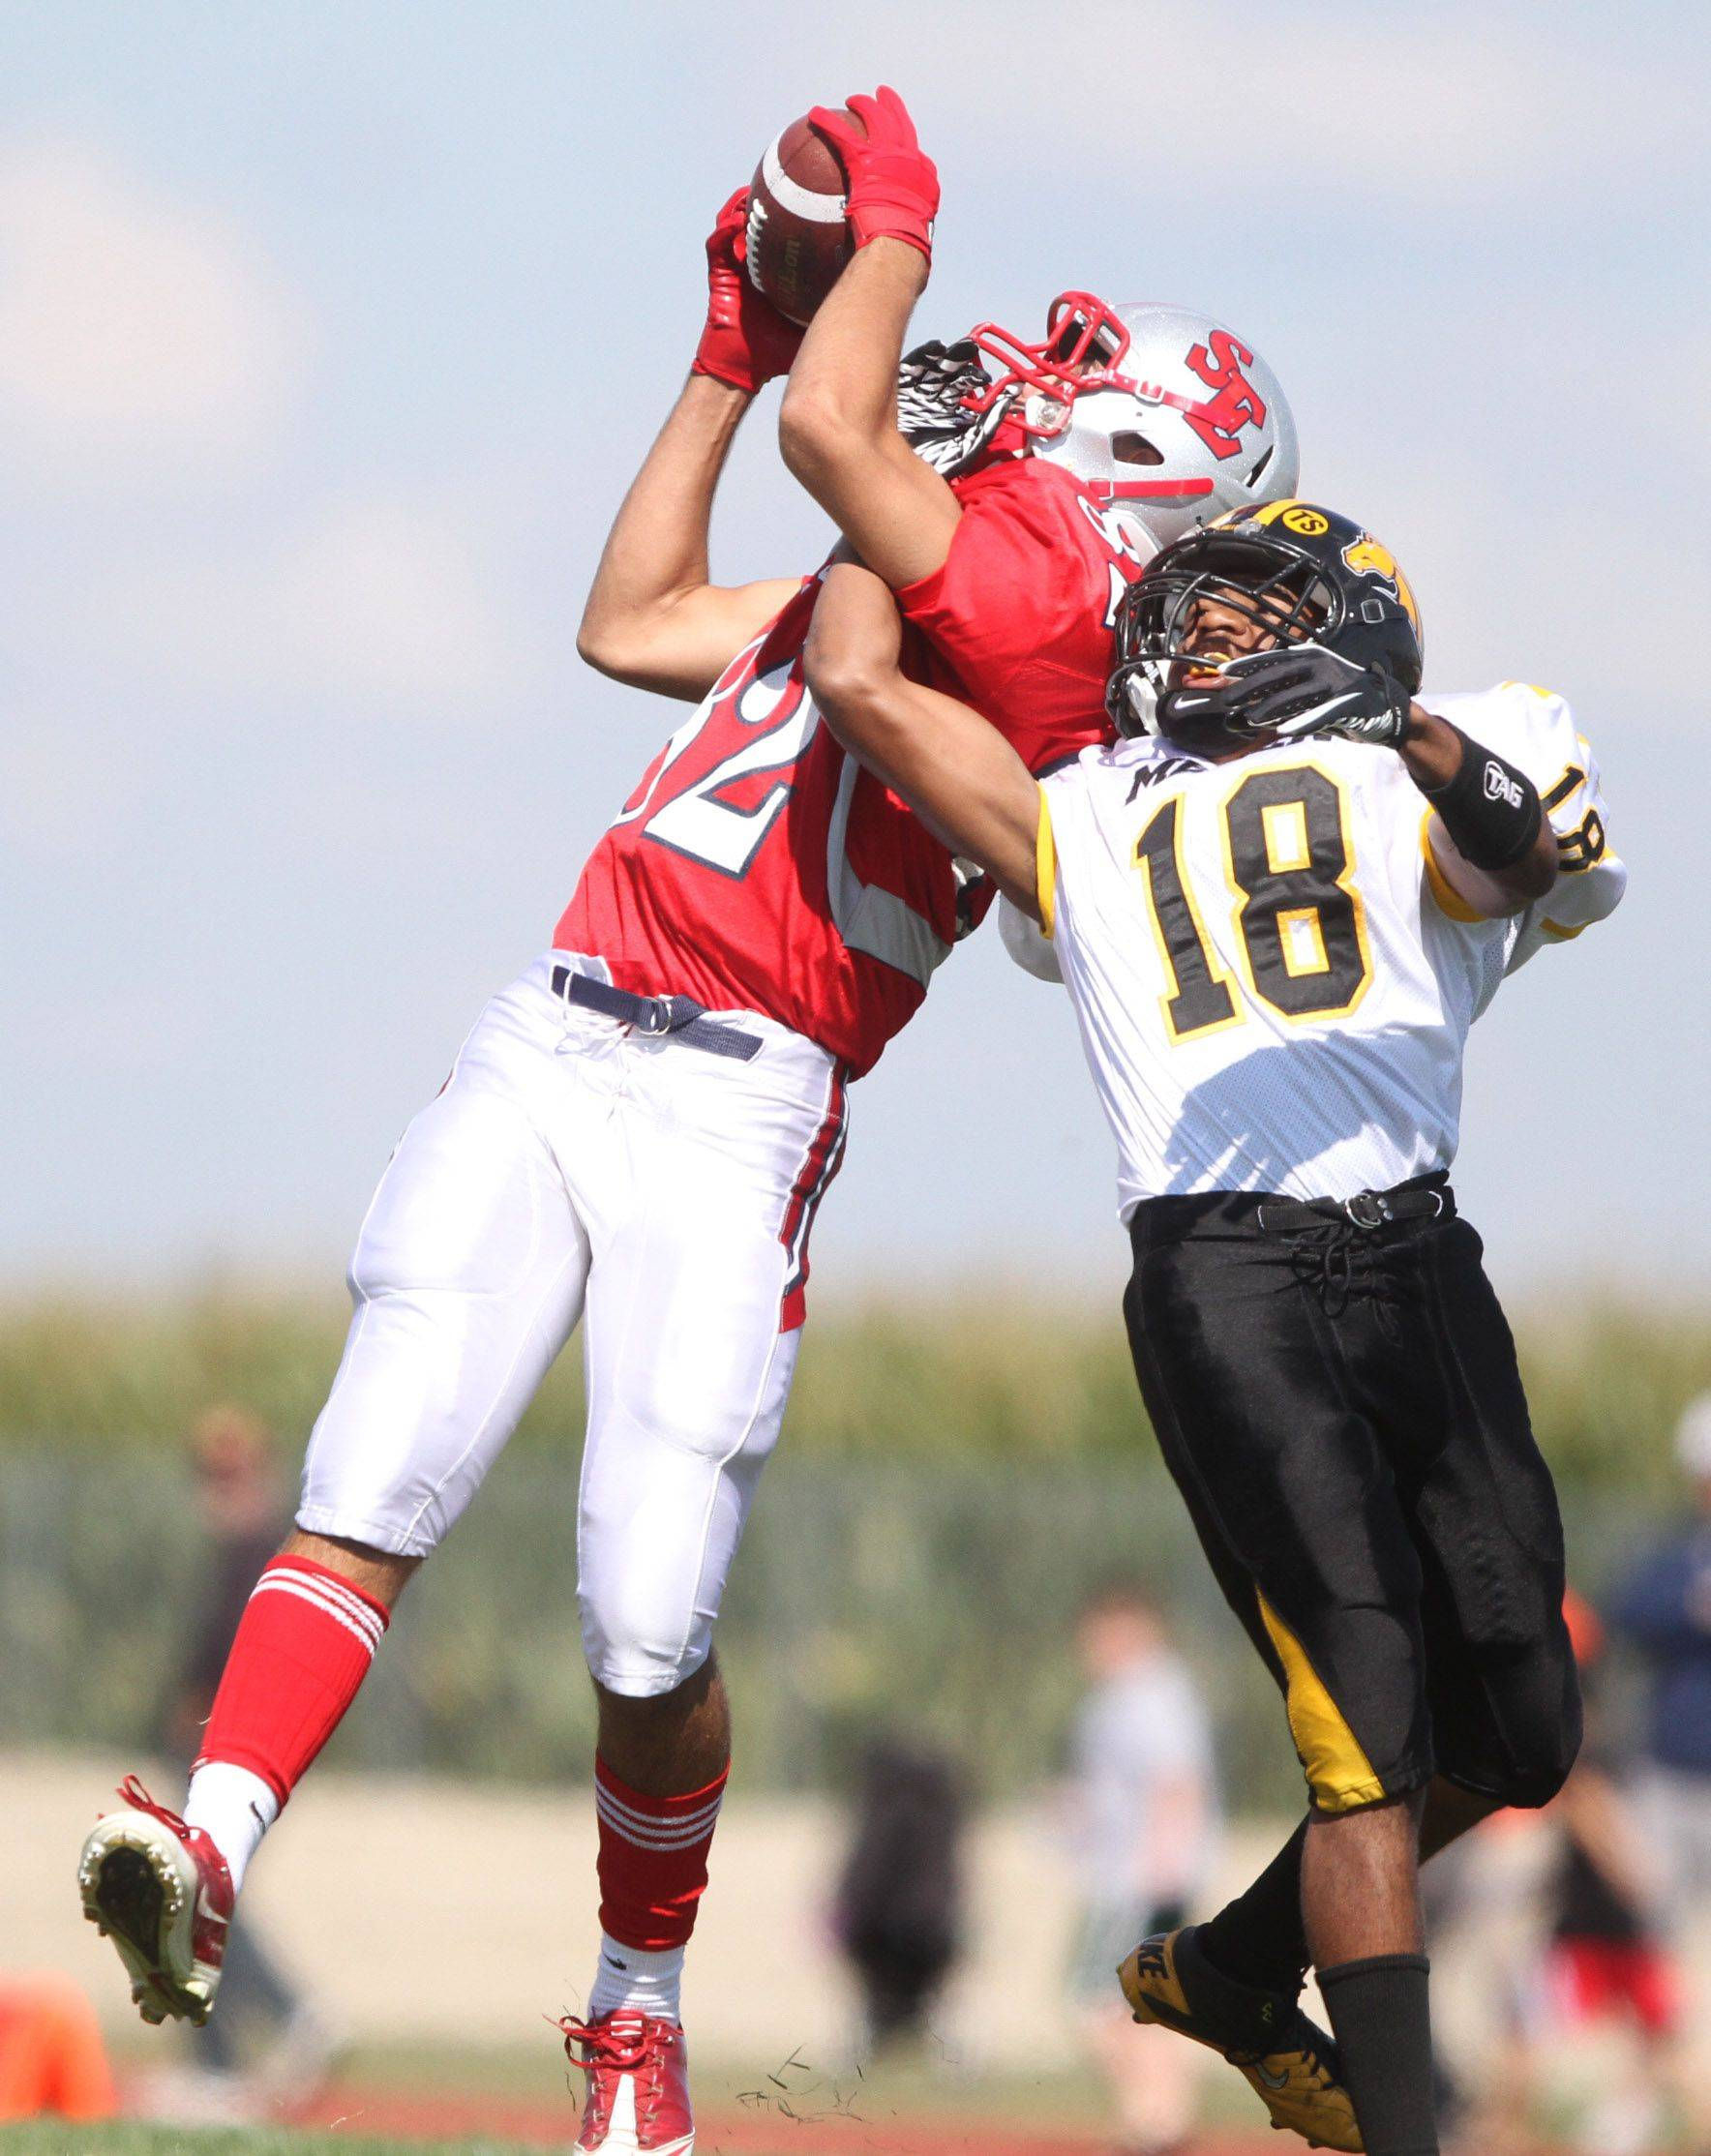 South Elgin's Joe Crivolie pulls in a pass against Metea Valley defender Preston Mitchell.